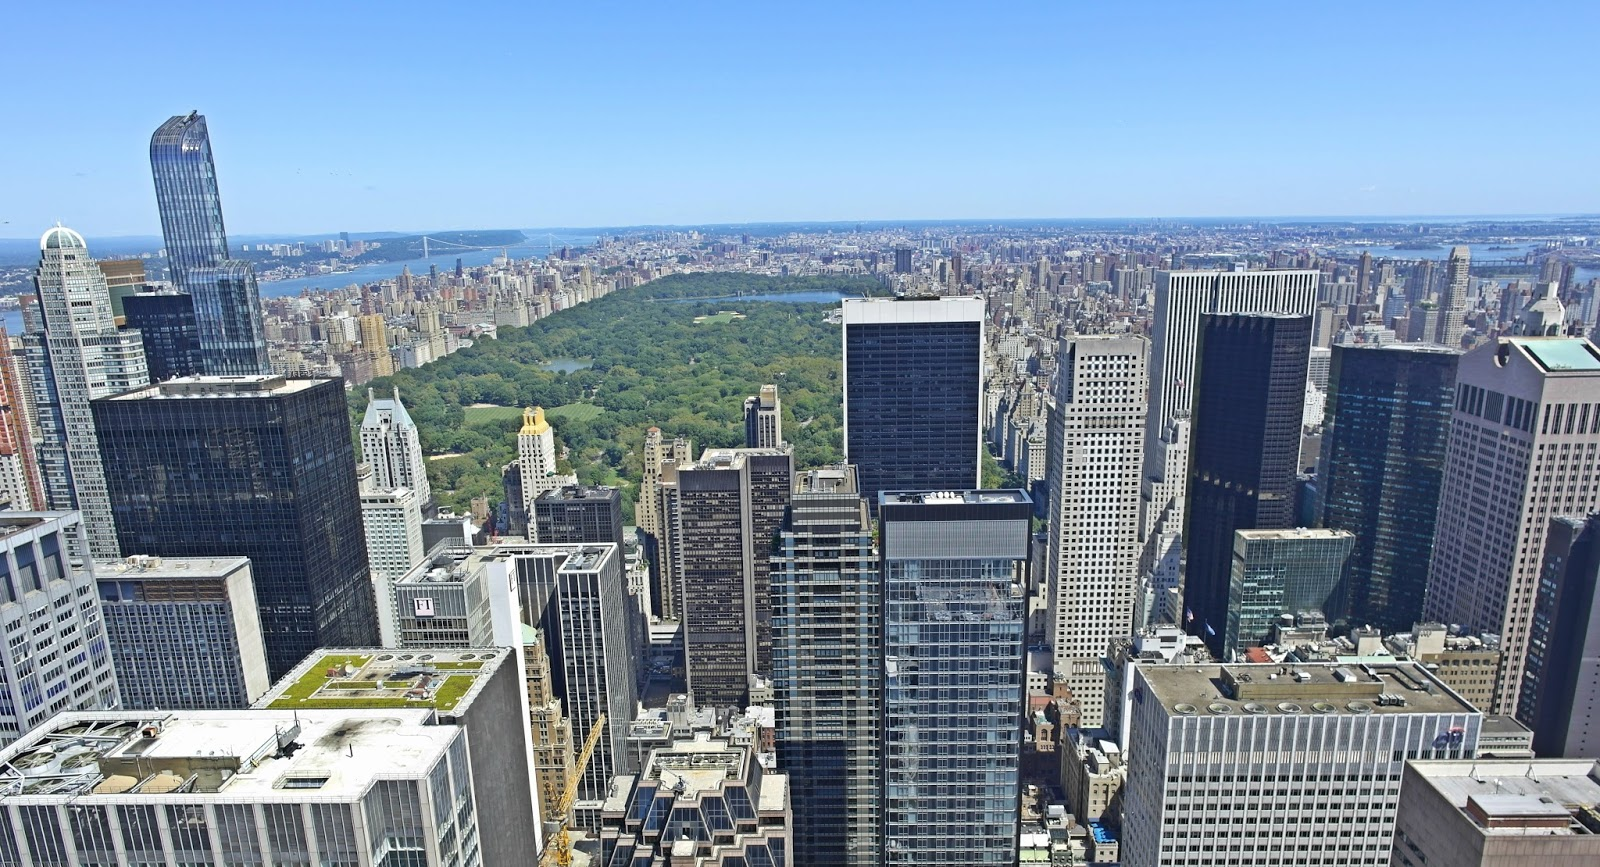 view of NYC, Rockefeller centre